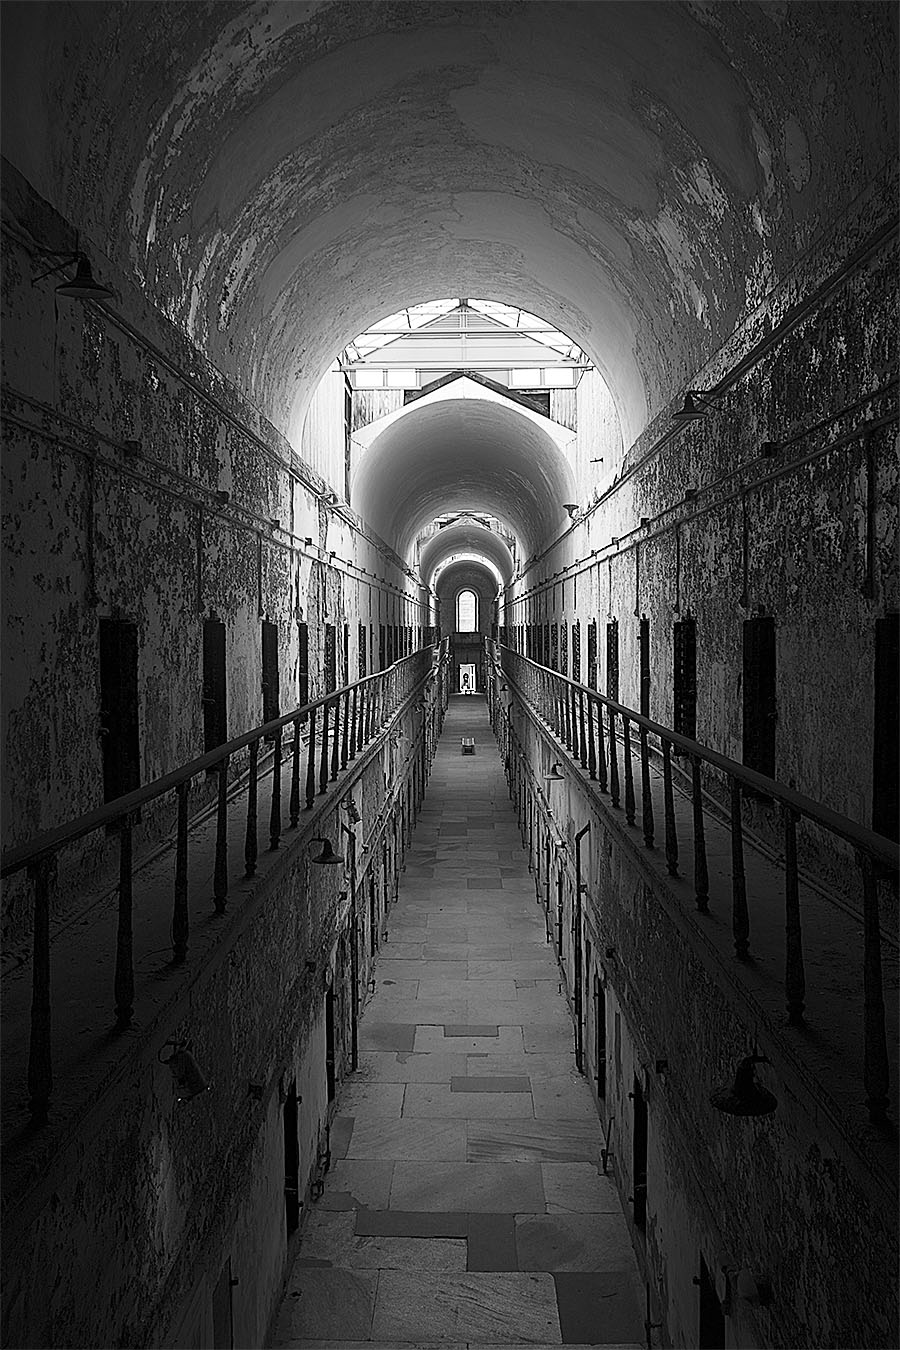 brian_schoenauer_photography_eastern_state_penitentiary_corridor_black_white_tunnel_cells_hallway